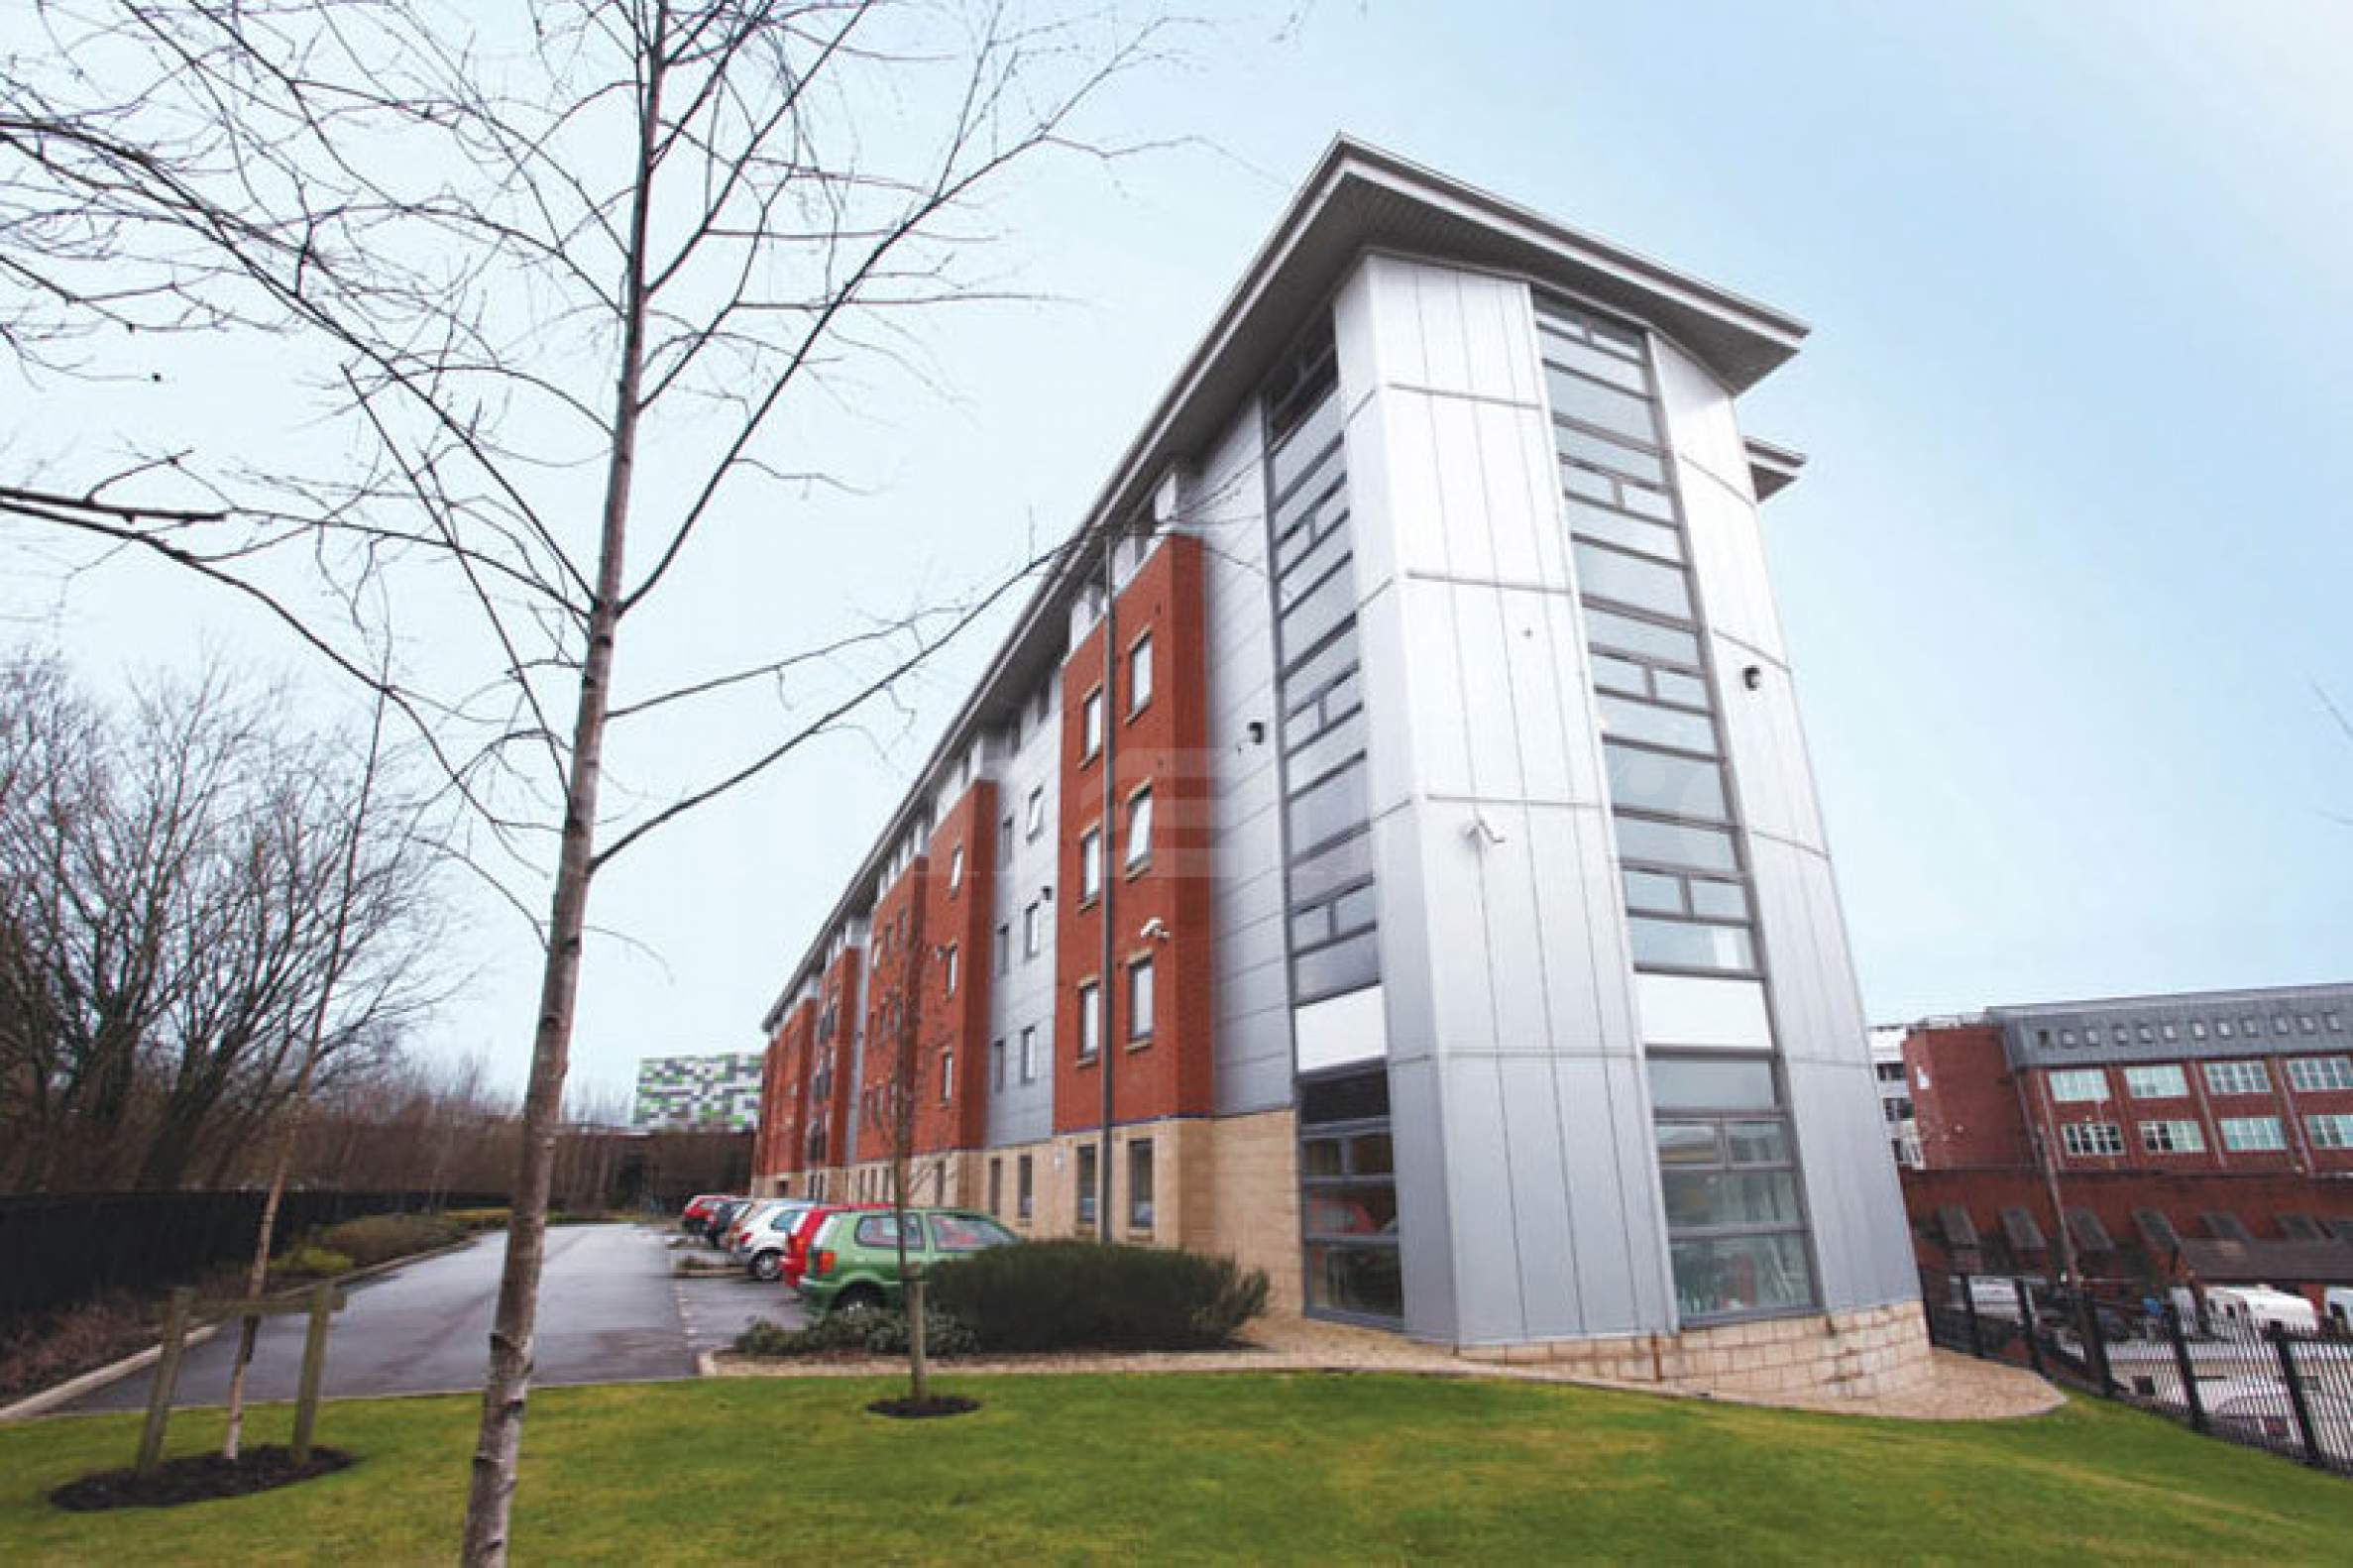 Operational student accommodation with 7% assuared net return1 - Stonehard